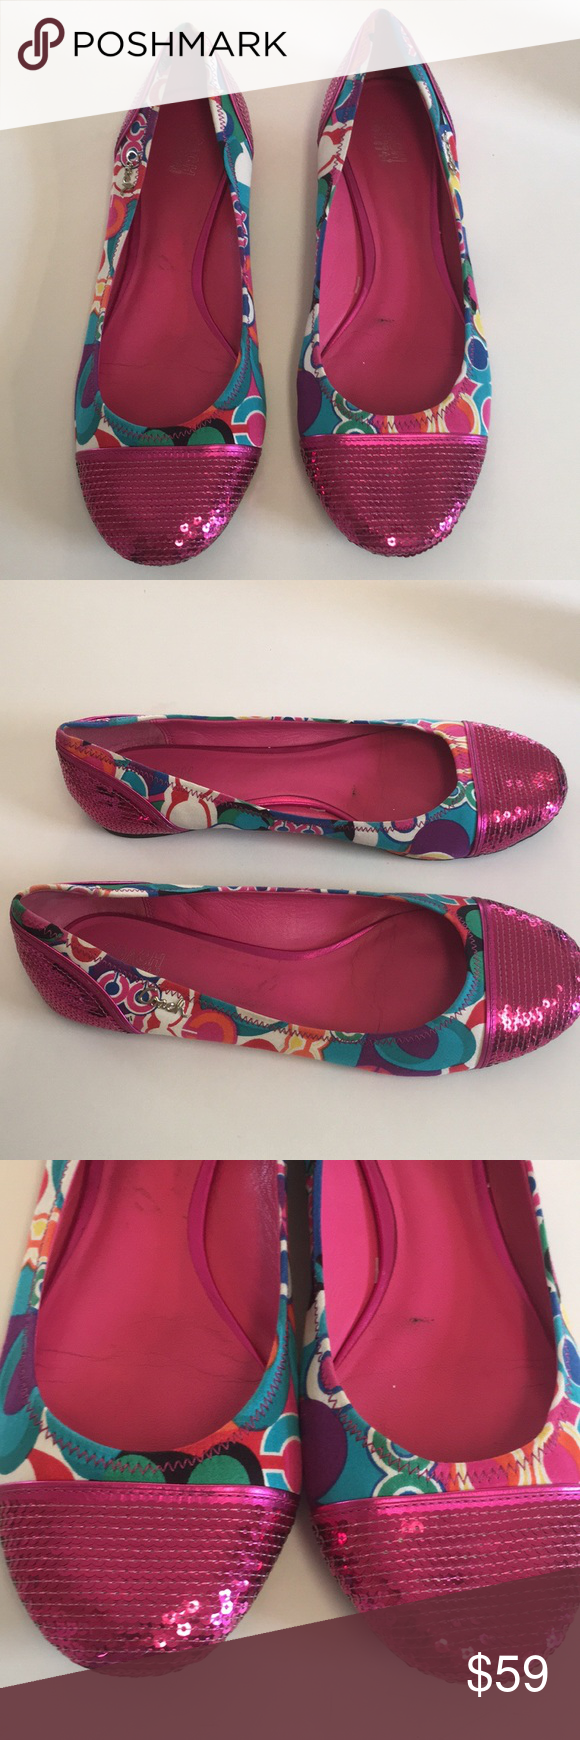 Coach Shine pink poppy print sequined ballet flats Adorable